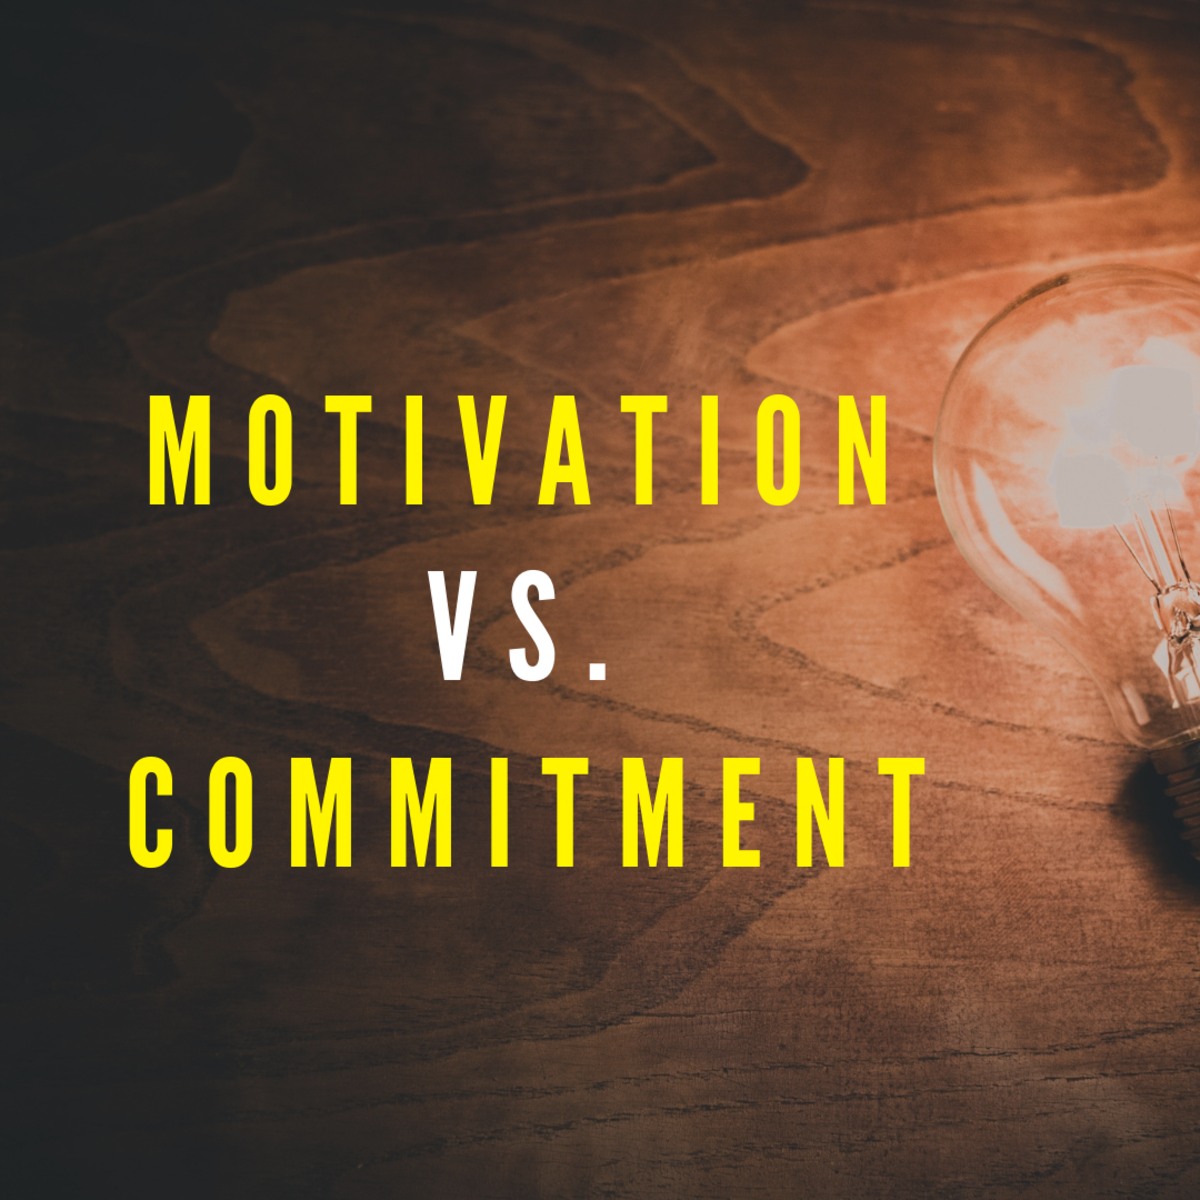 What to choose between motivation and commitment?